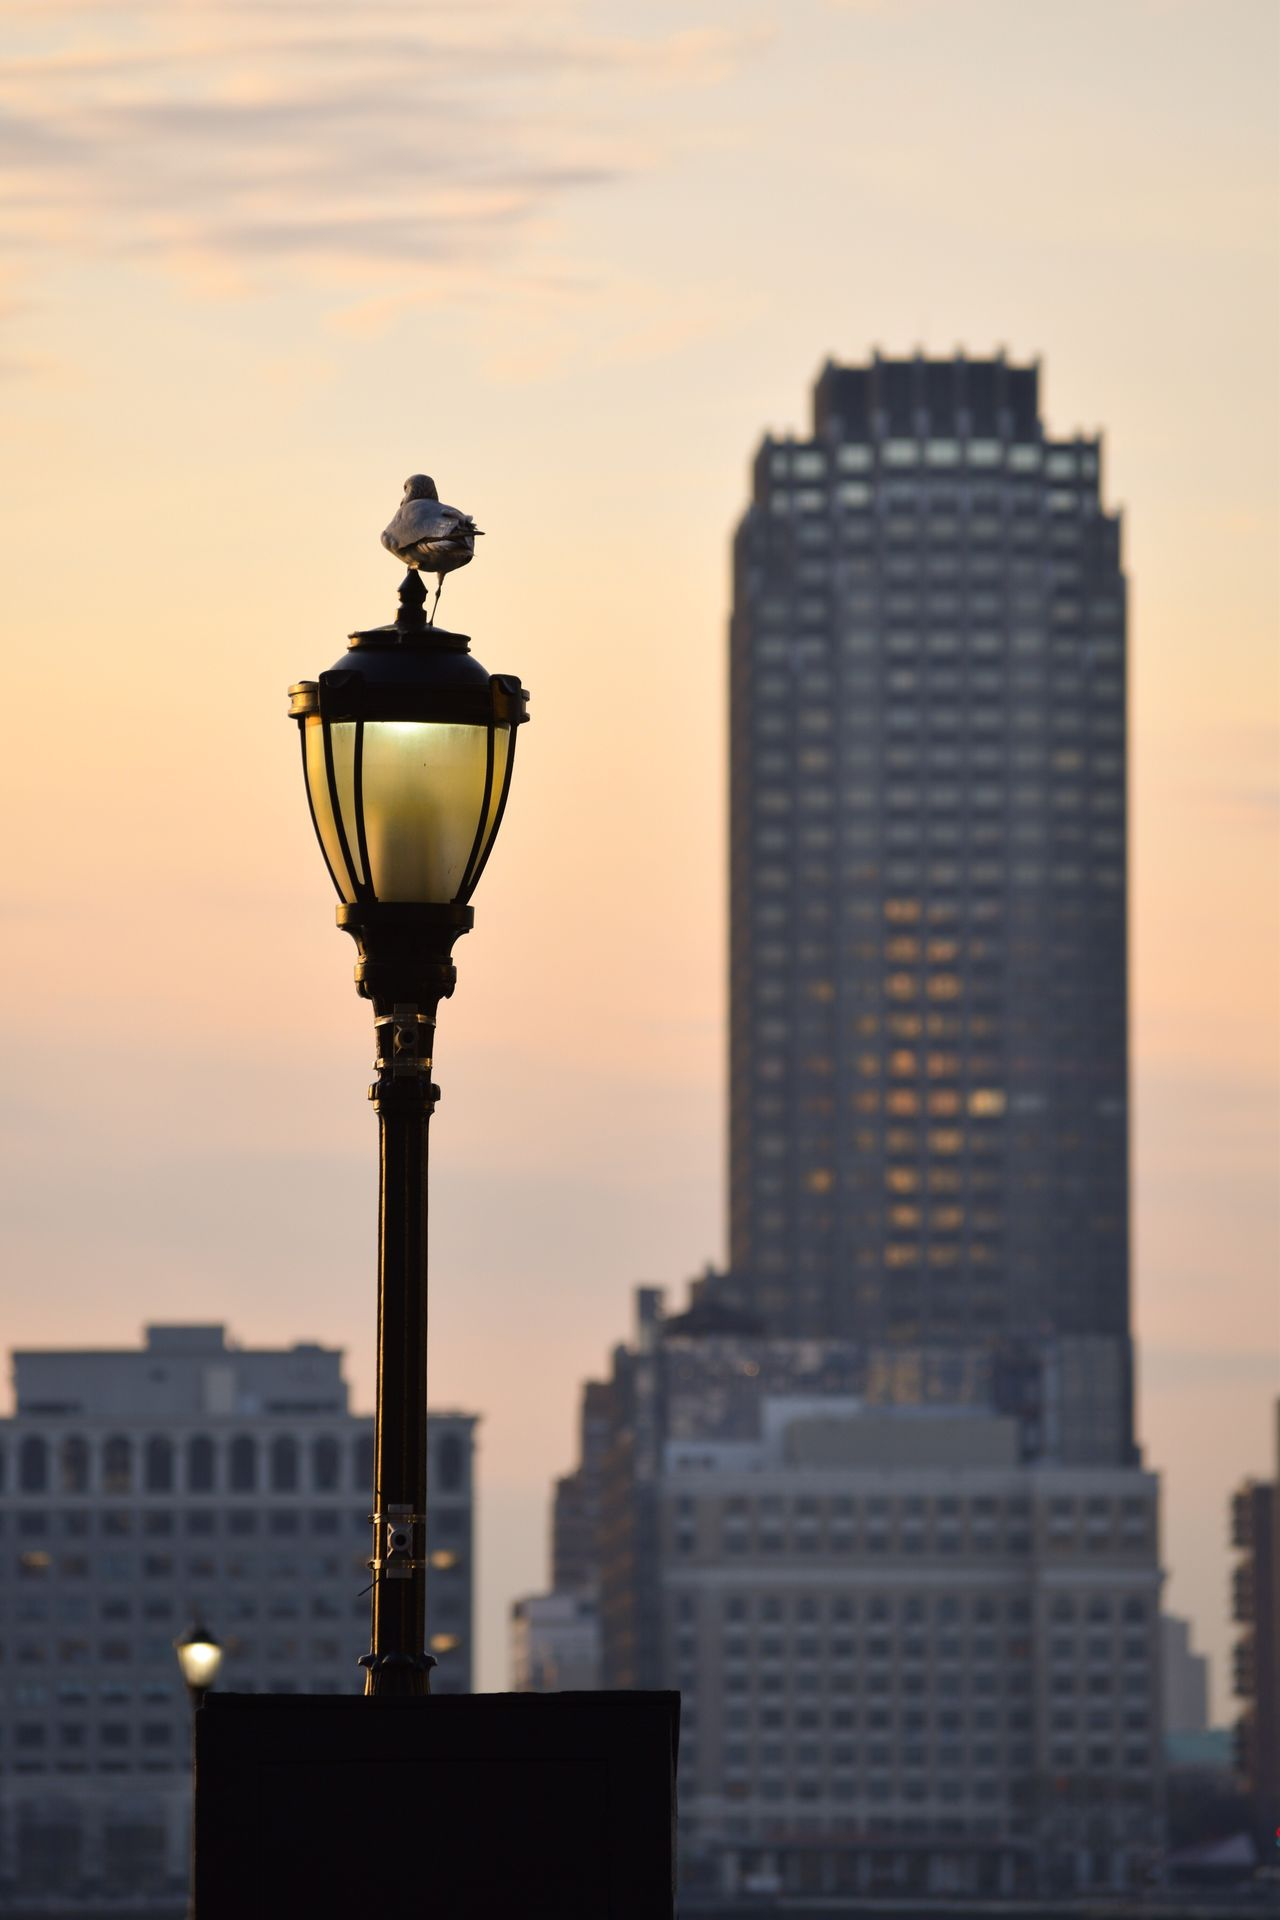 Sunset Sky City Building Exterior Built Structure Street Lamp Cityscape Nature Bird Animal Themes Silhouette Tranquil Scene EyeEmNewHere Tranquility Sunset Silhouettes Sunset_collection Orange Sky Sunset Battery Park Silhouettes Silhouette_collection Beauty In Nature Naturelovers Outdoors Nature Nature_collection